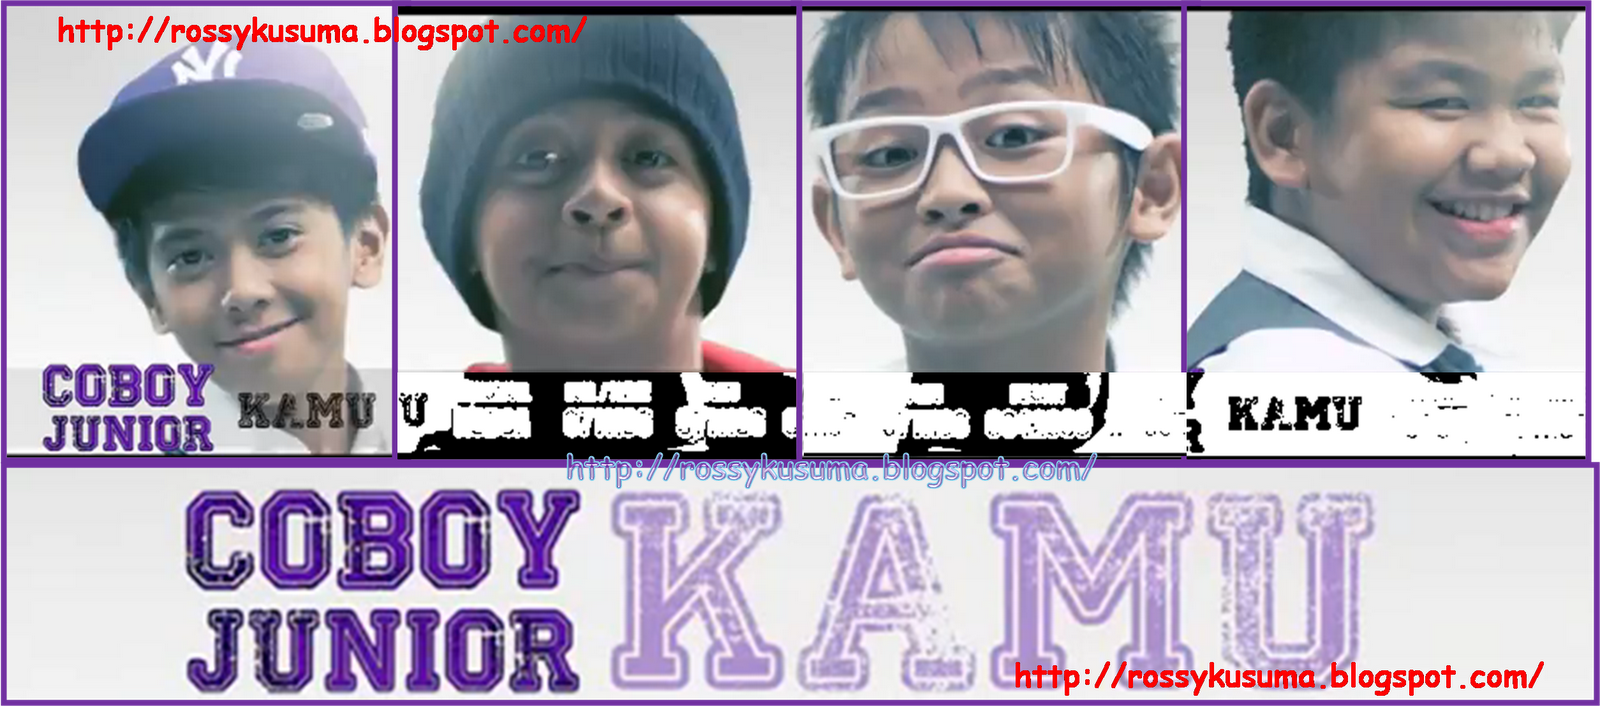 Coboy Junior - Kamu Lyrics